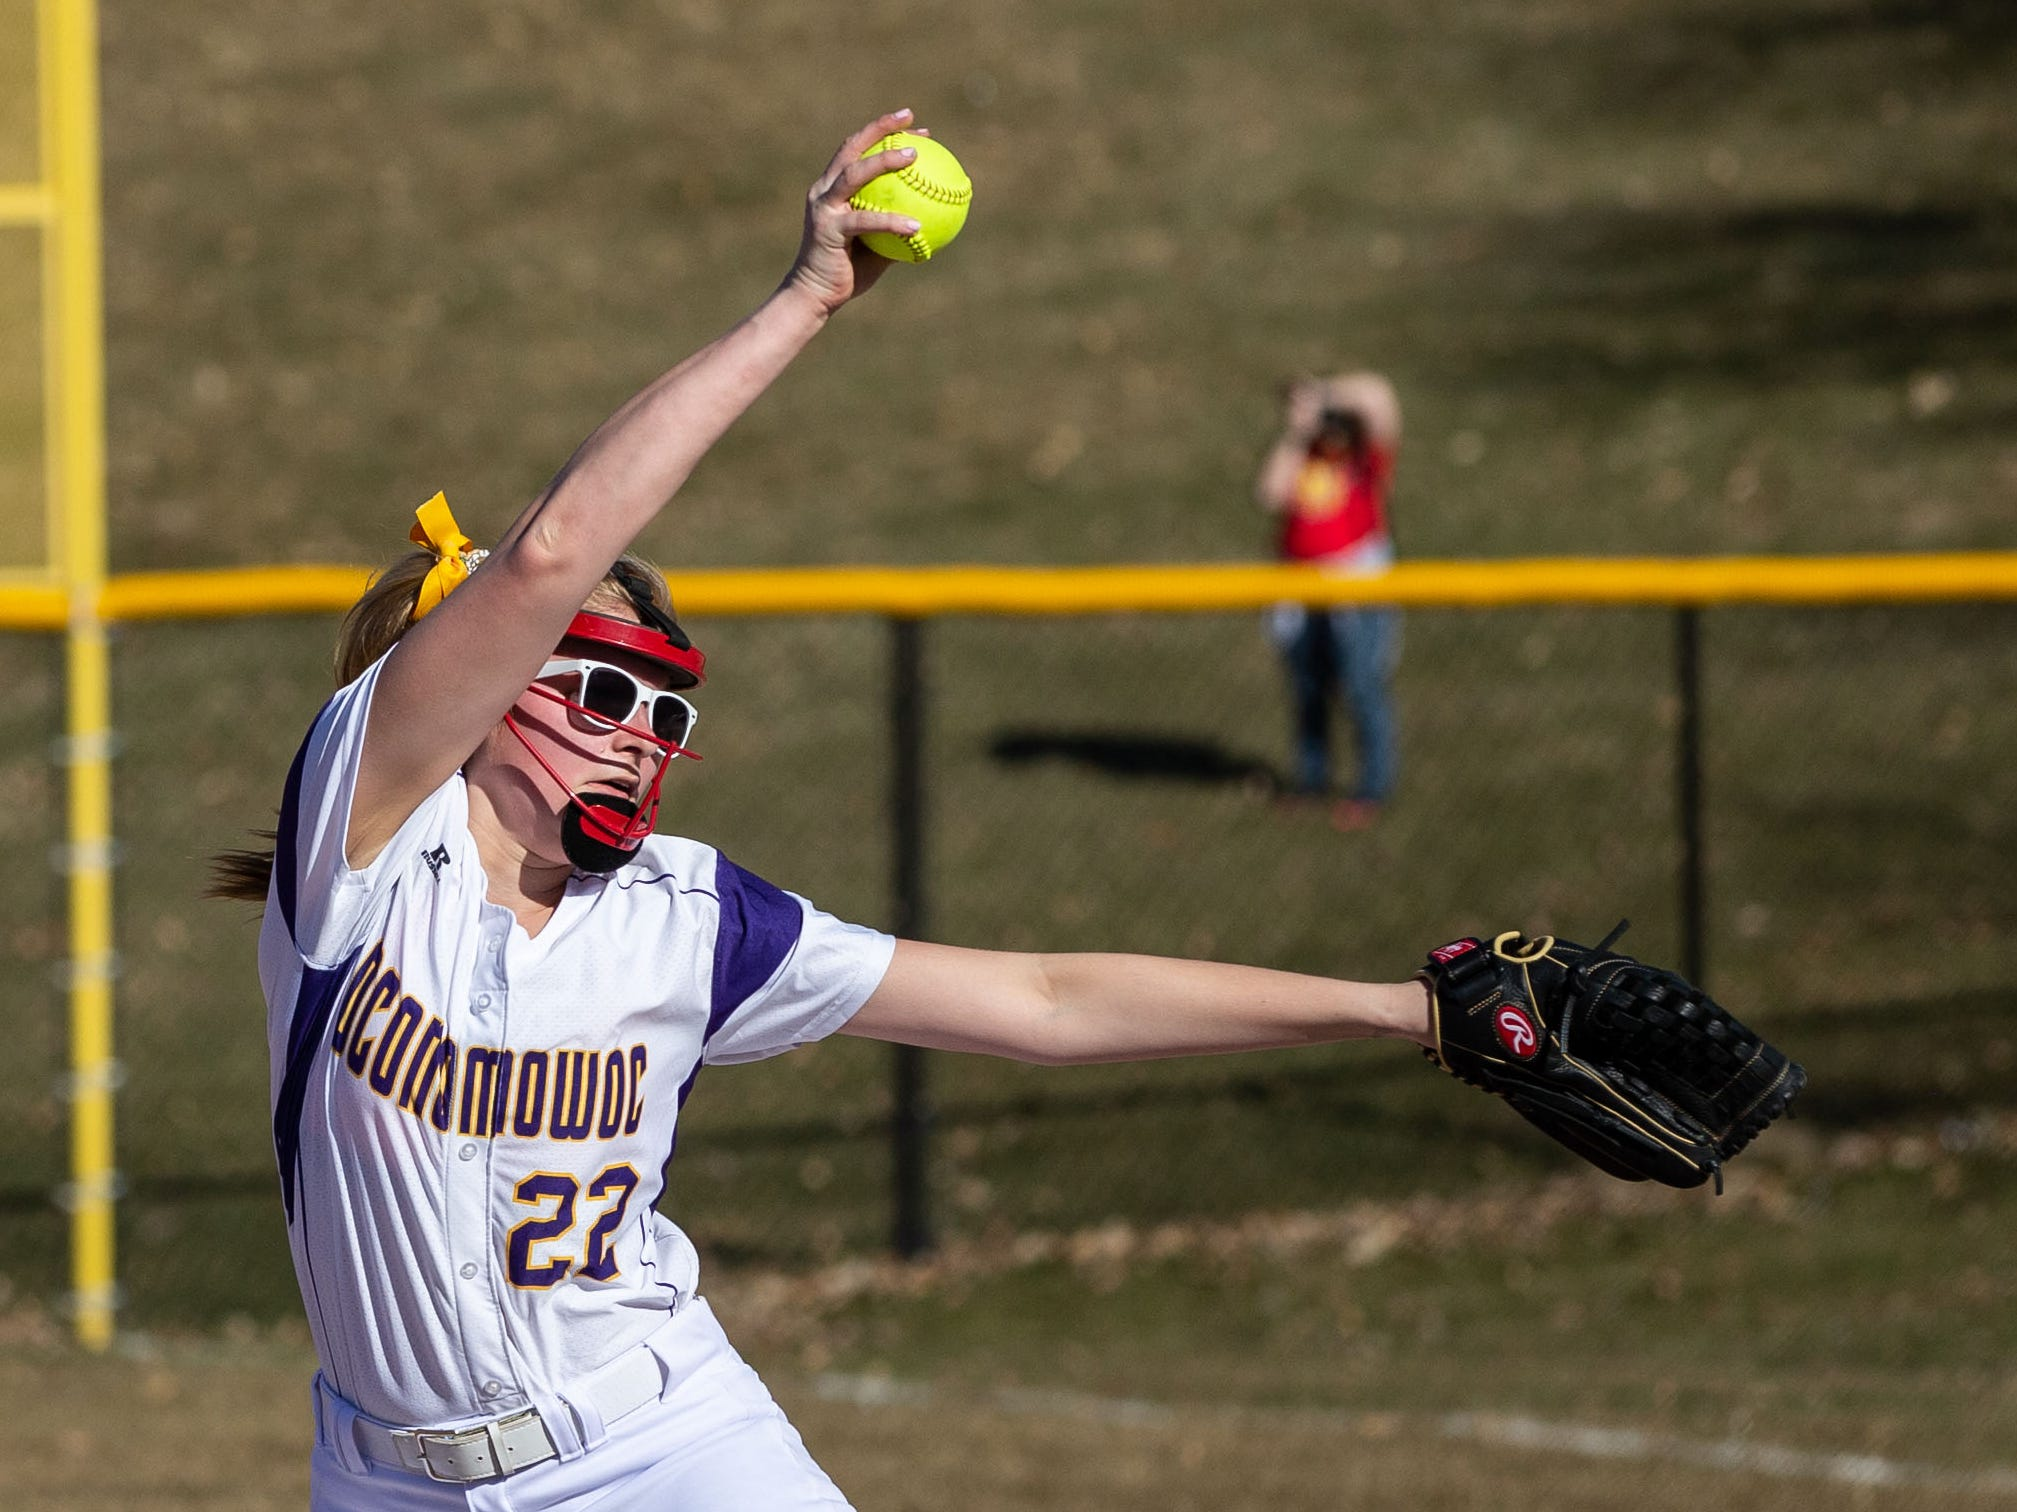 Oconomowoc pitcher Sarah Kopfer (22) winds up during the game at home against Sussex Hamilton on Monday, April 8, 2019.